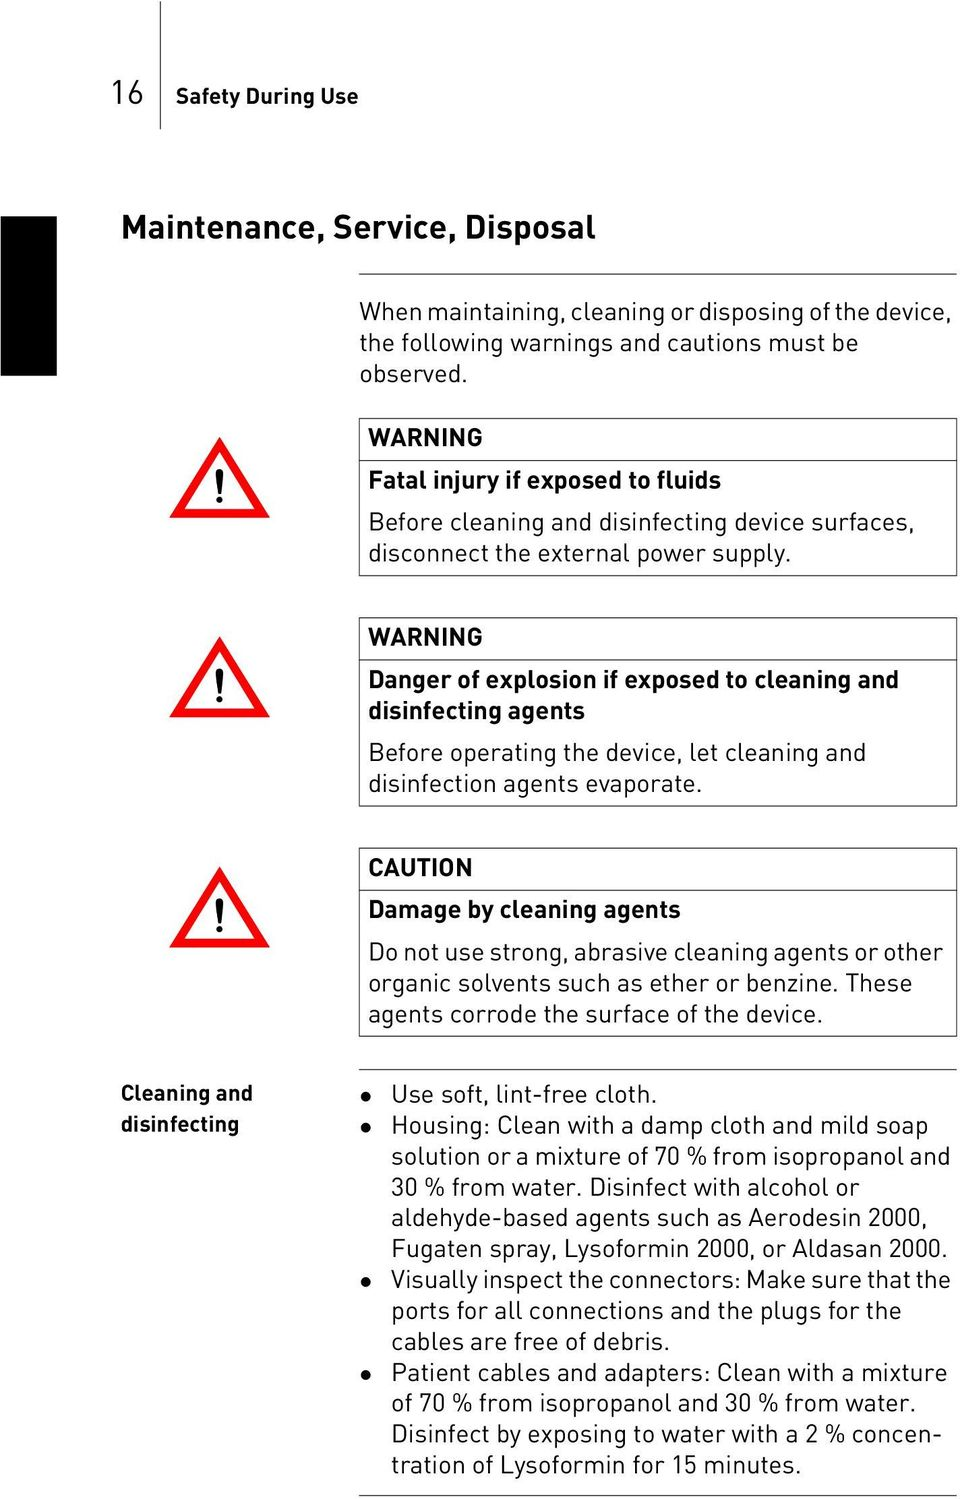 WARNING Danger of explosion if exposed to cleaning and disinfecting agents Before operating the device, let cleaning and disinfection agents evaporate.